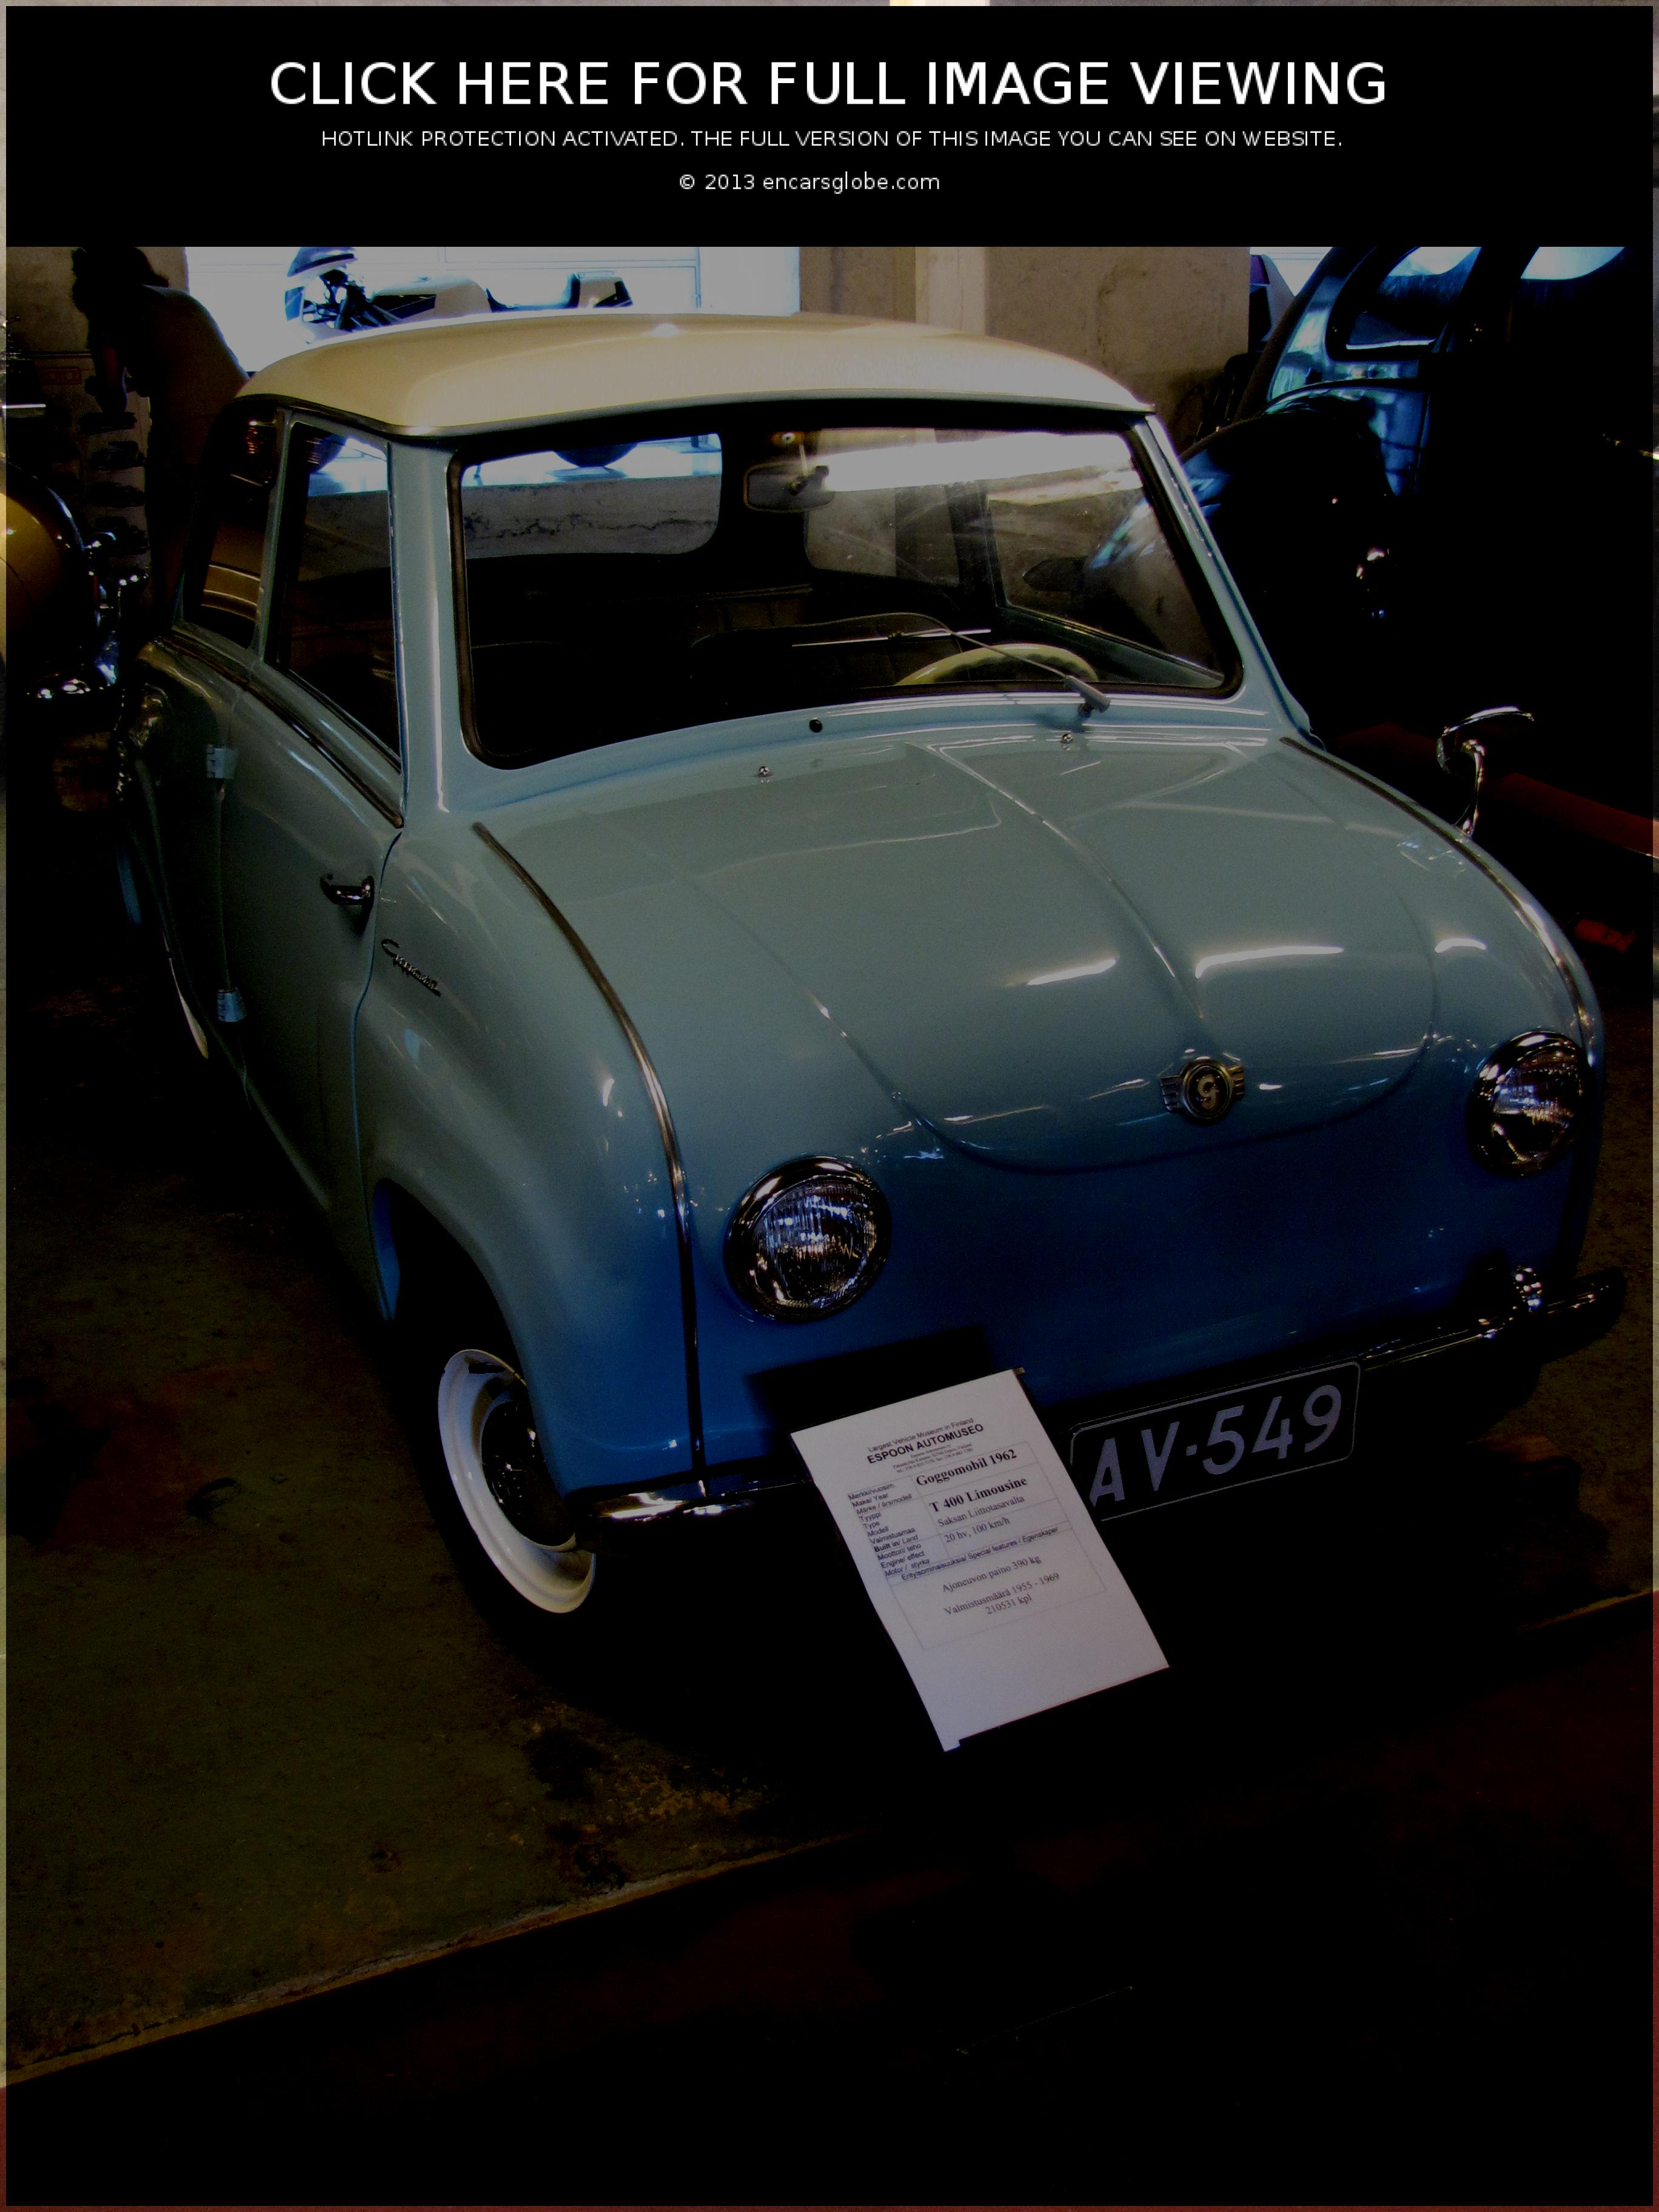 Glas Goggomobil Limousine Photo Gallery: Photo #11 out of 9, Image ...